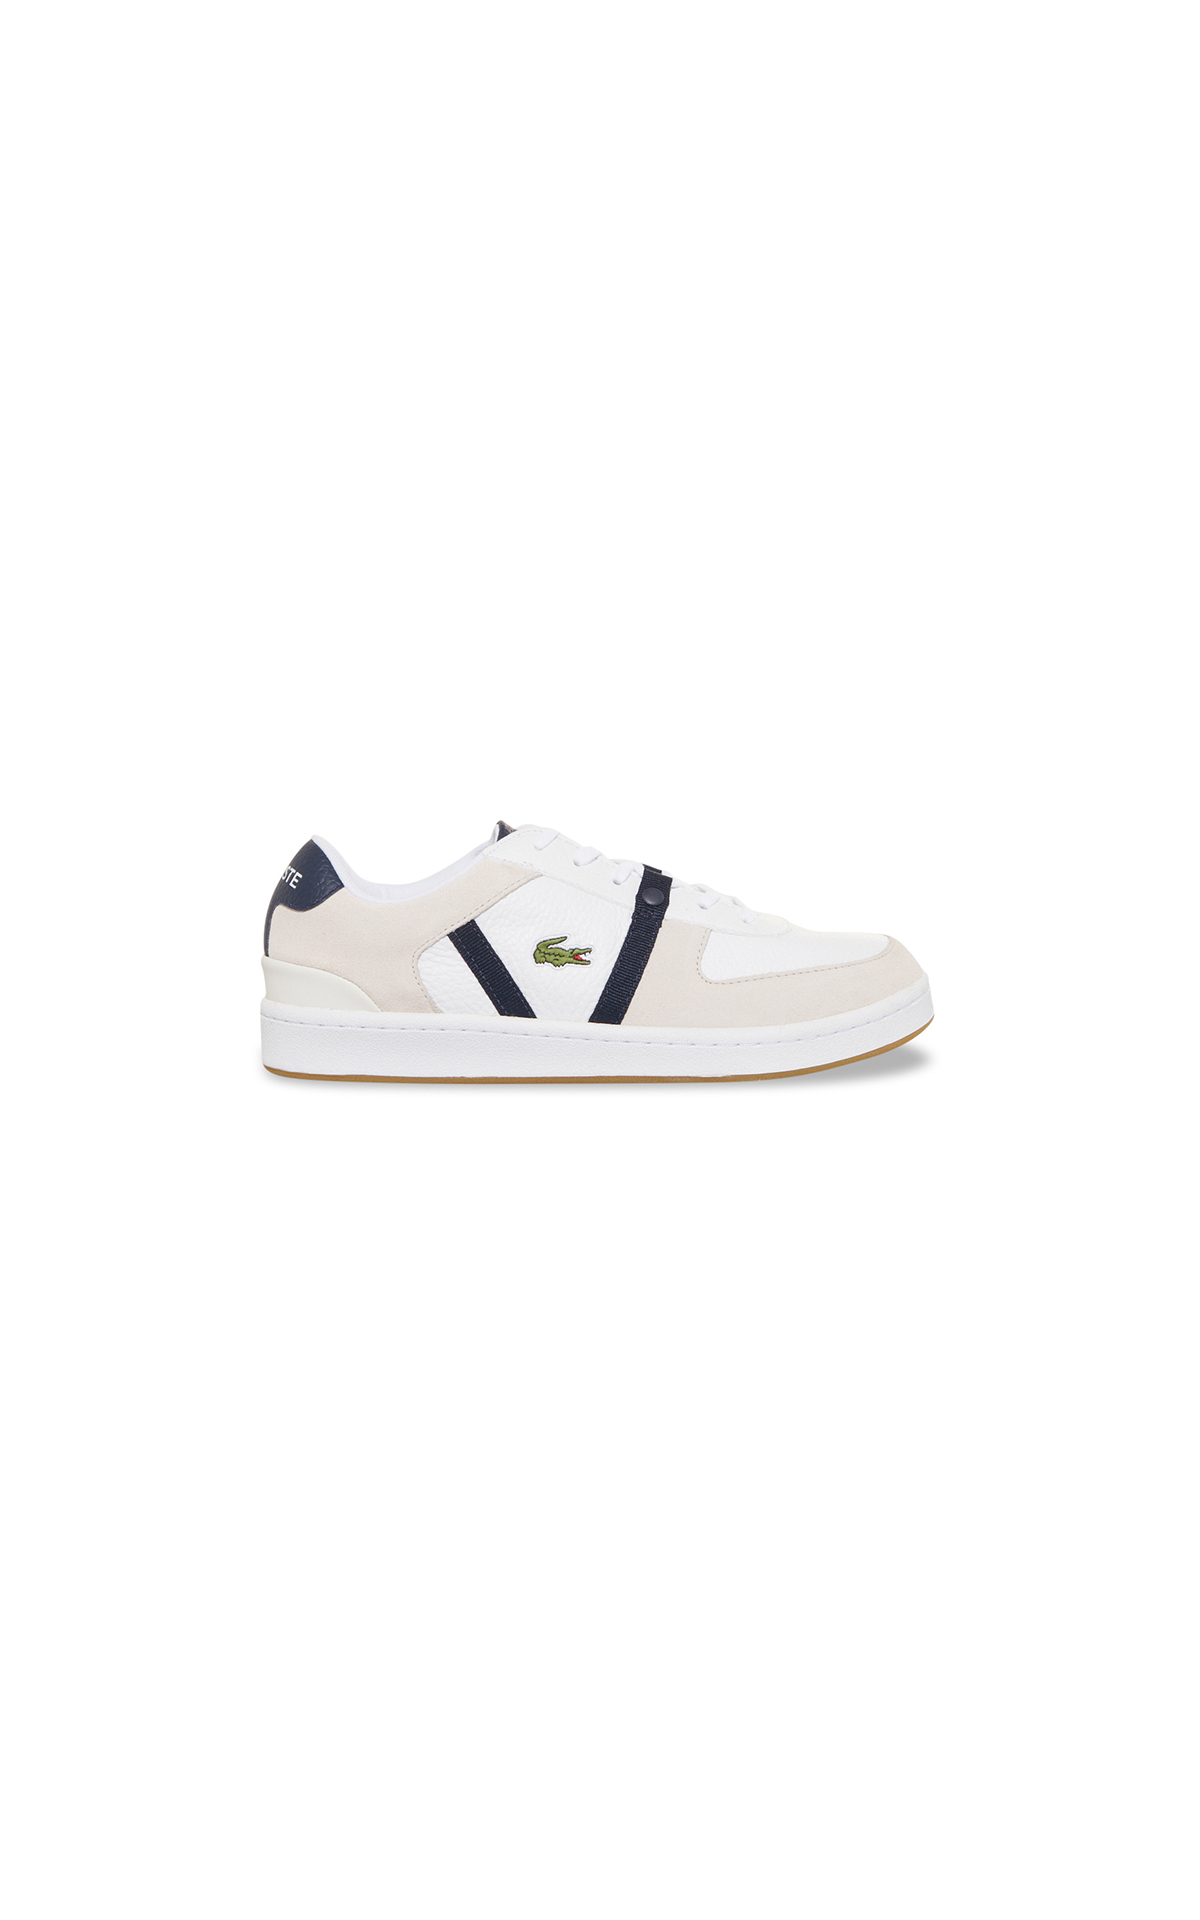 La Vallée Village Lacoste Beige and white logo sneakers